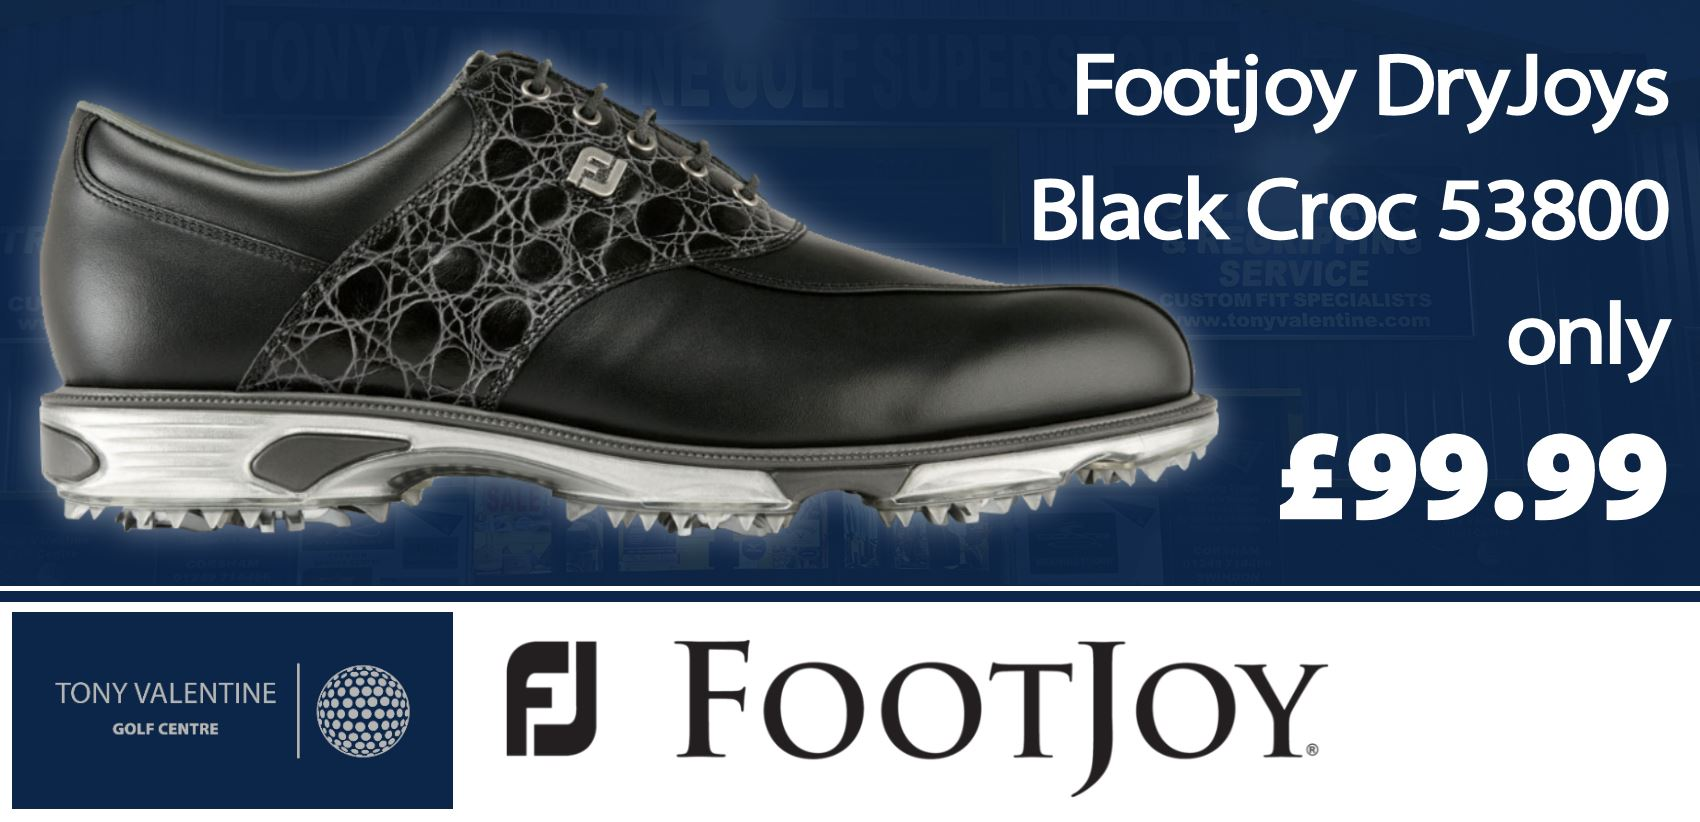 Footjoy Dryjoys Tour 53800